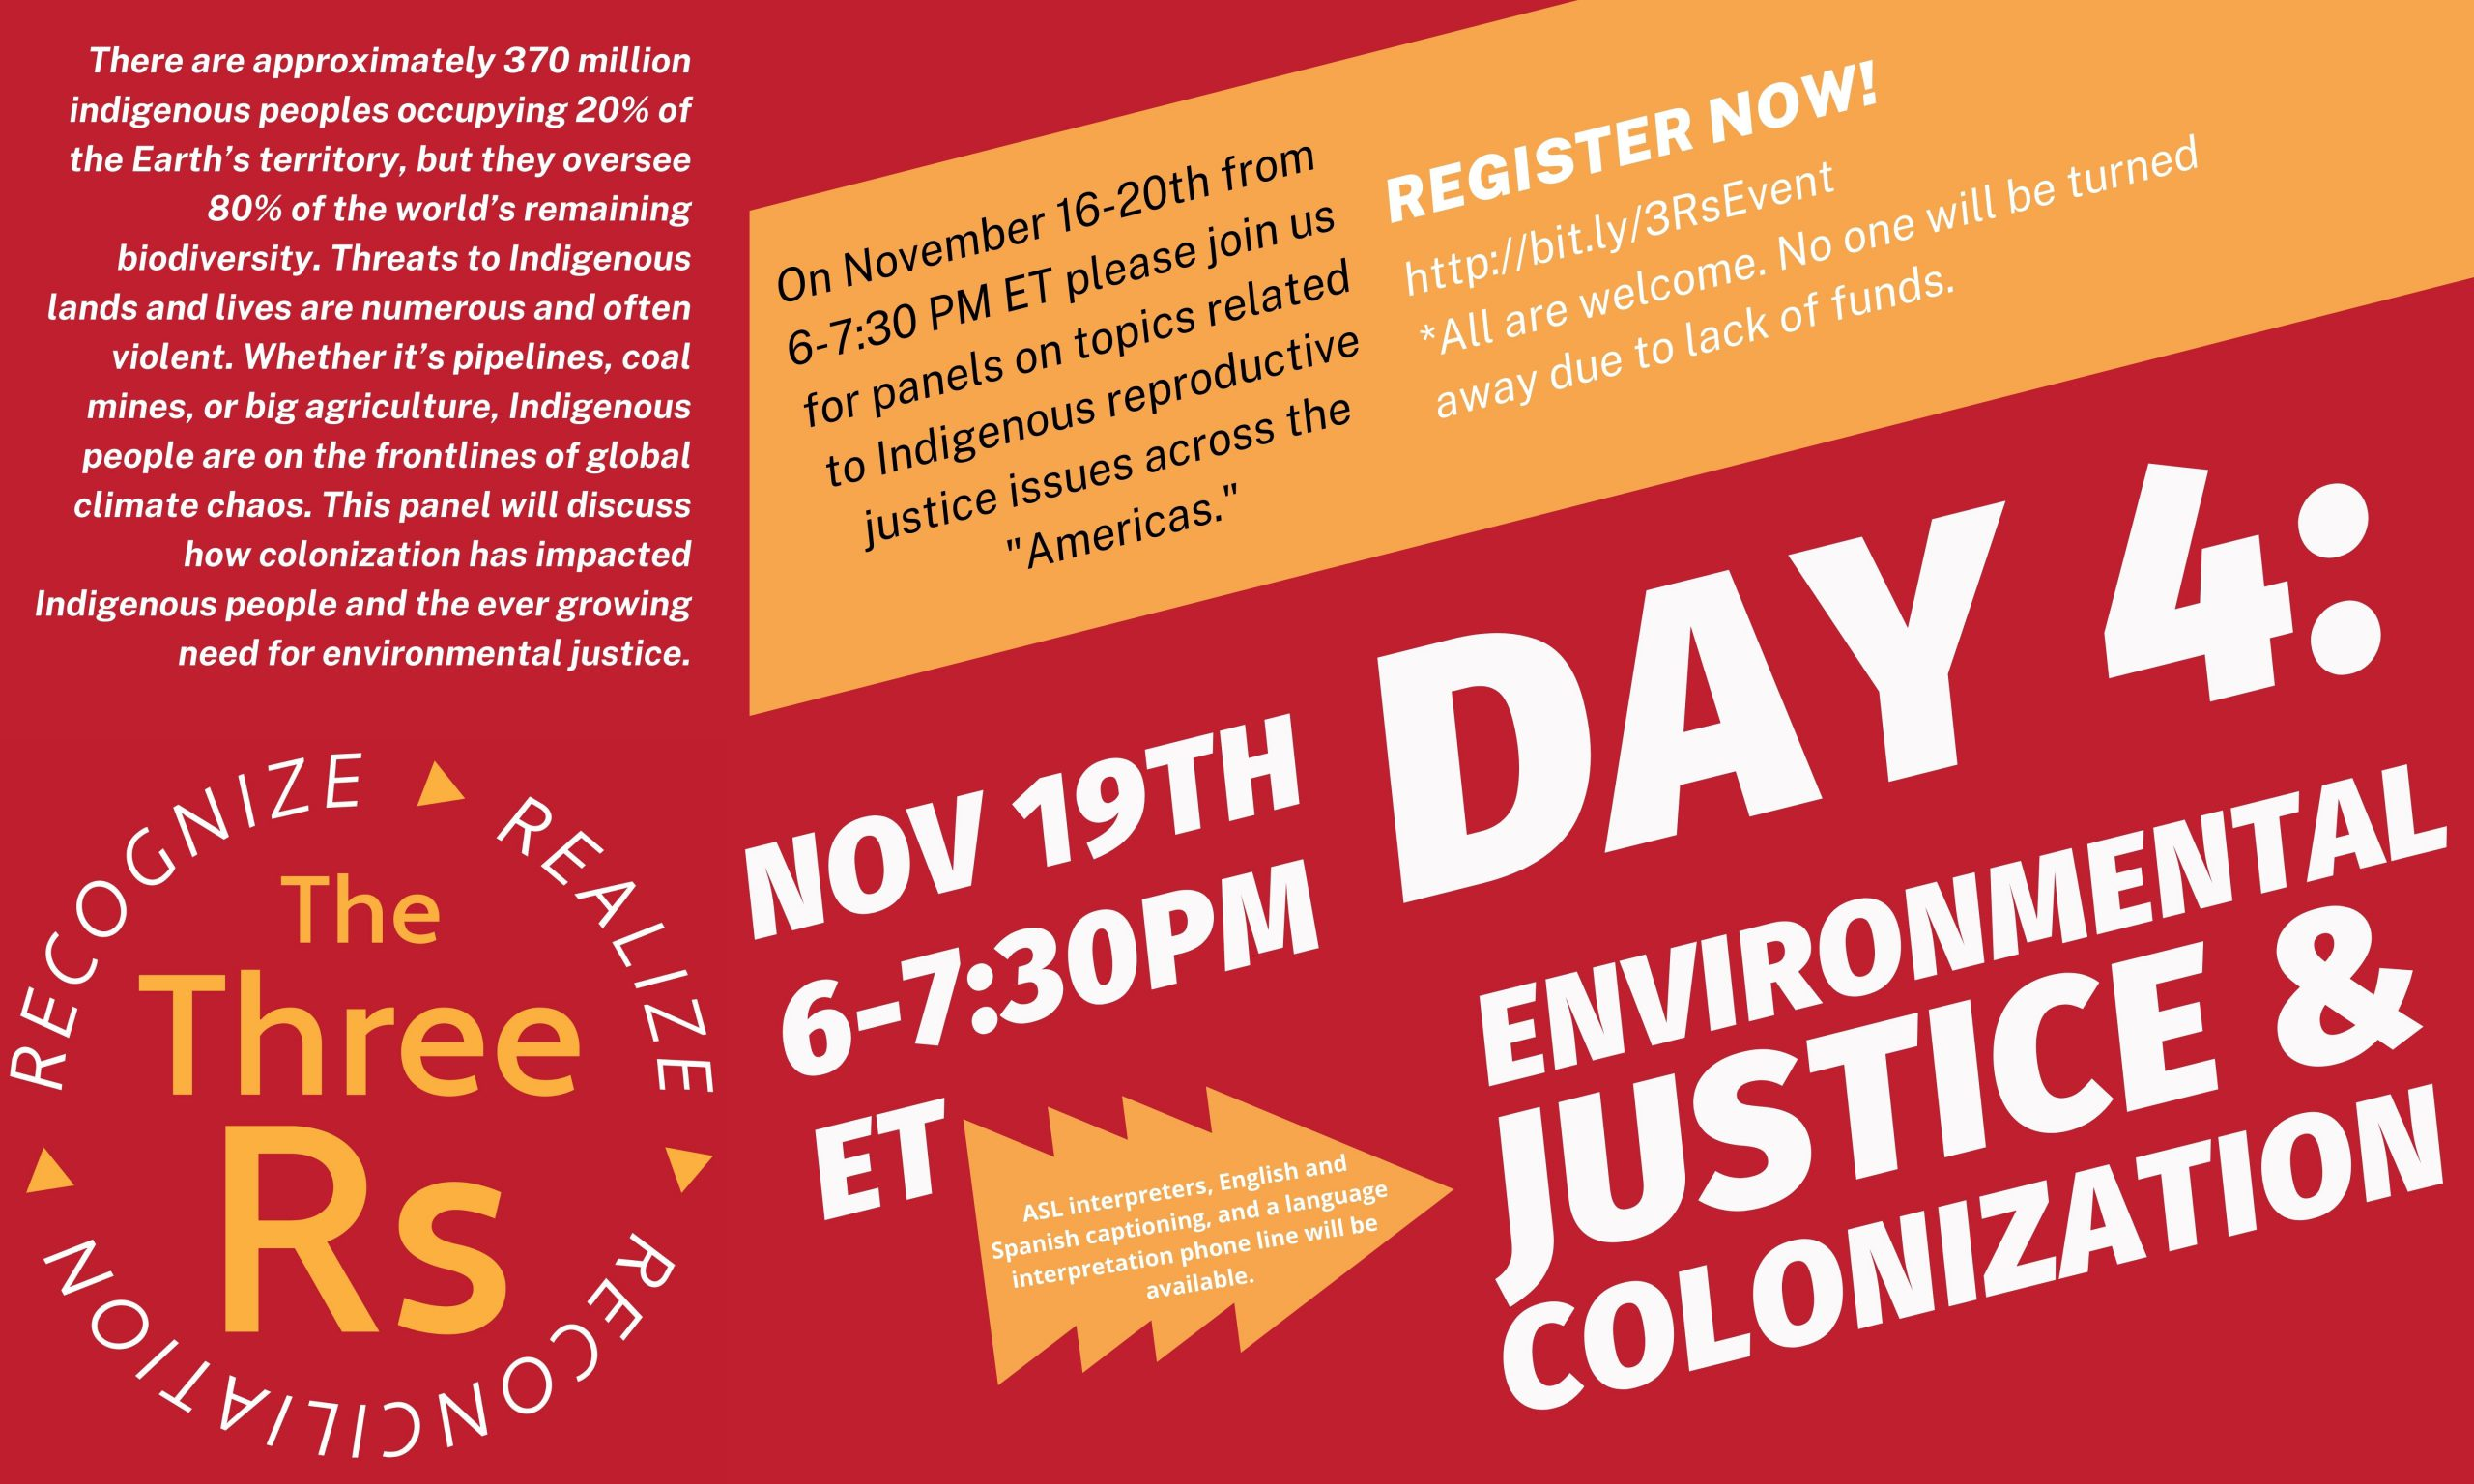 Environmental justice and colonization